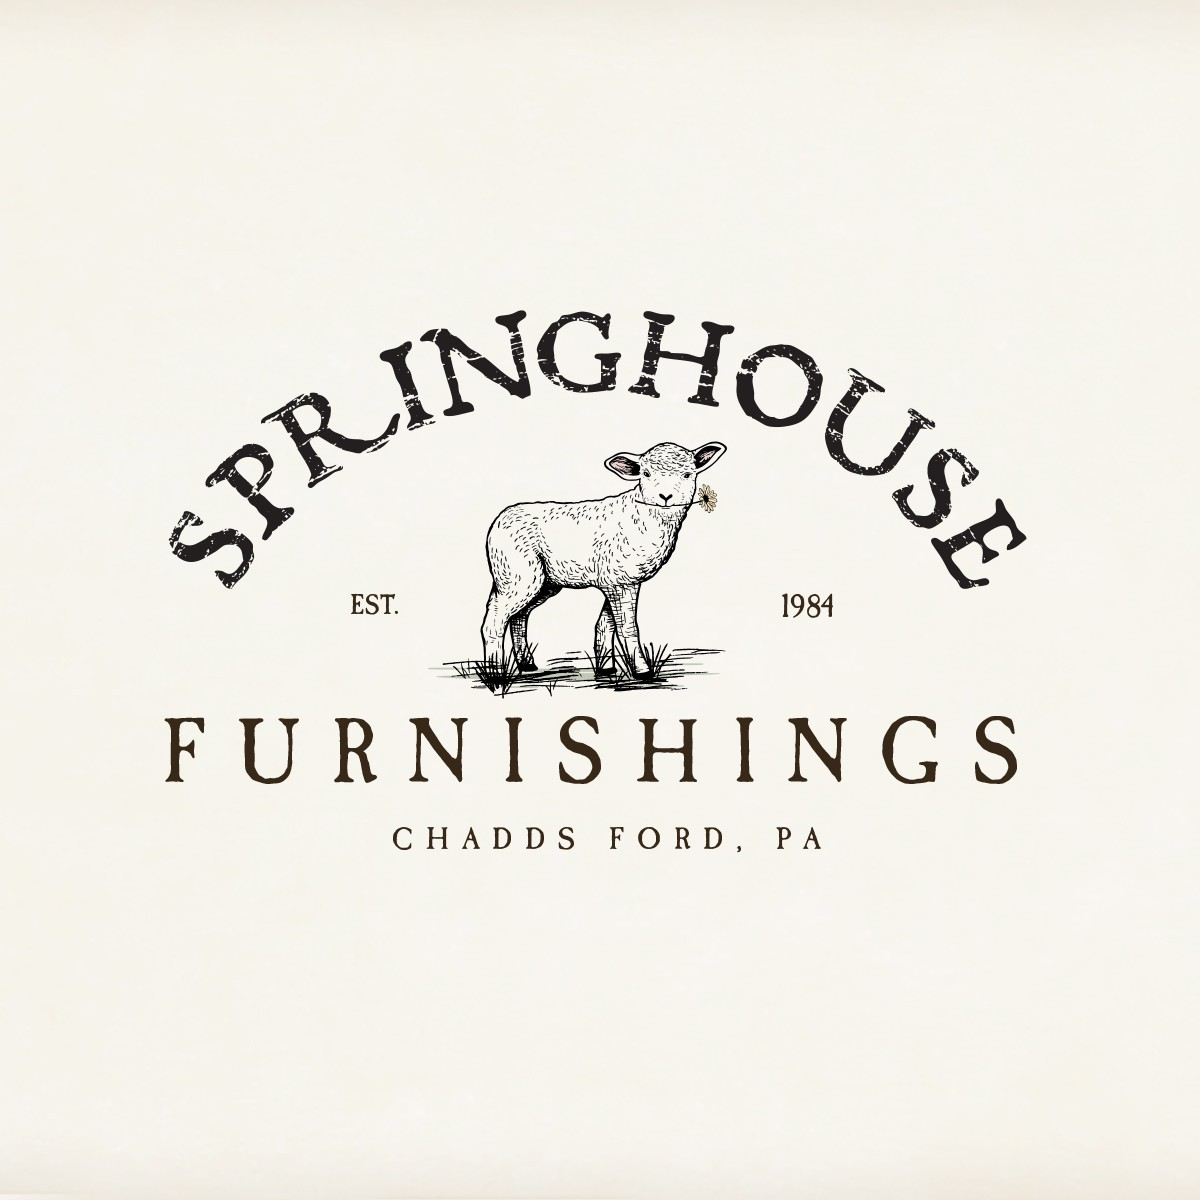 Unique! 1 logo for Springhouse, representing a Farm shop and Furnishing shop. Need clean rustic modern look. Use of gree